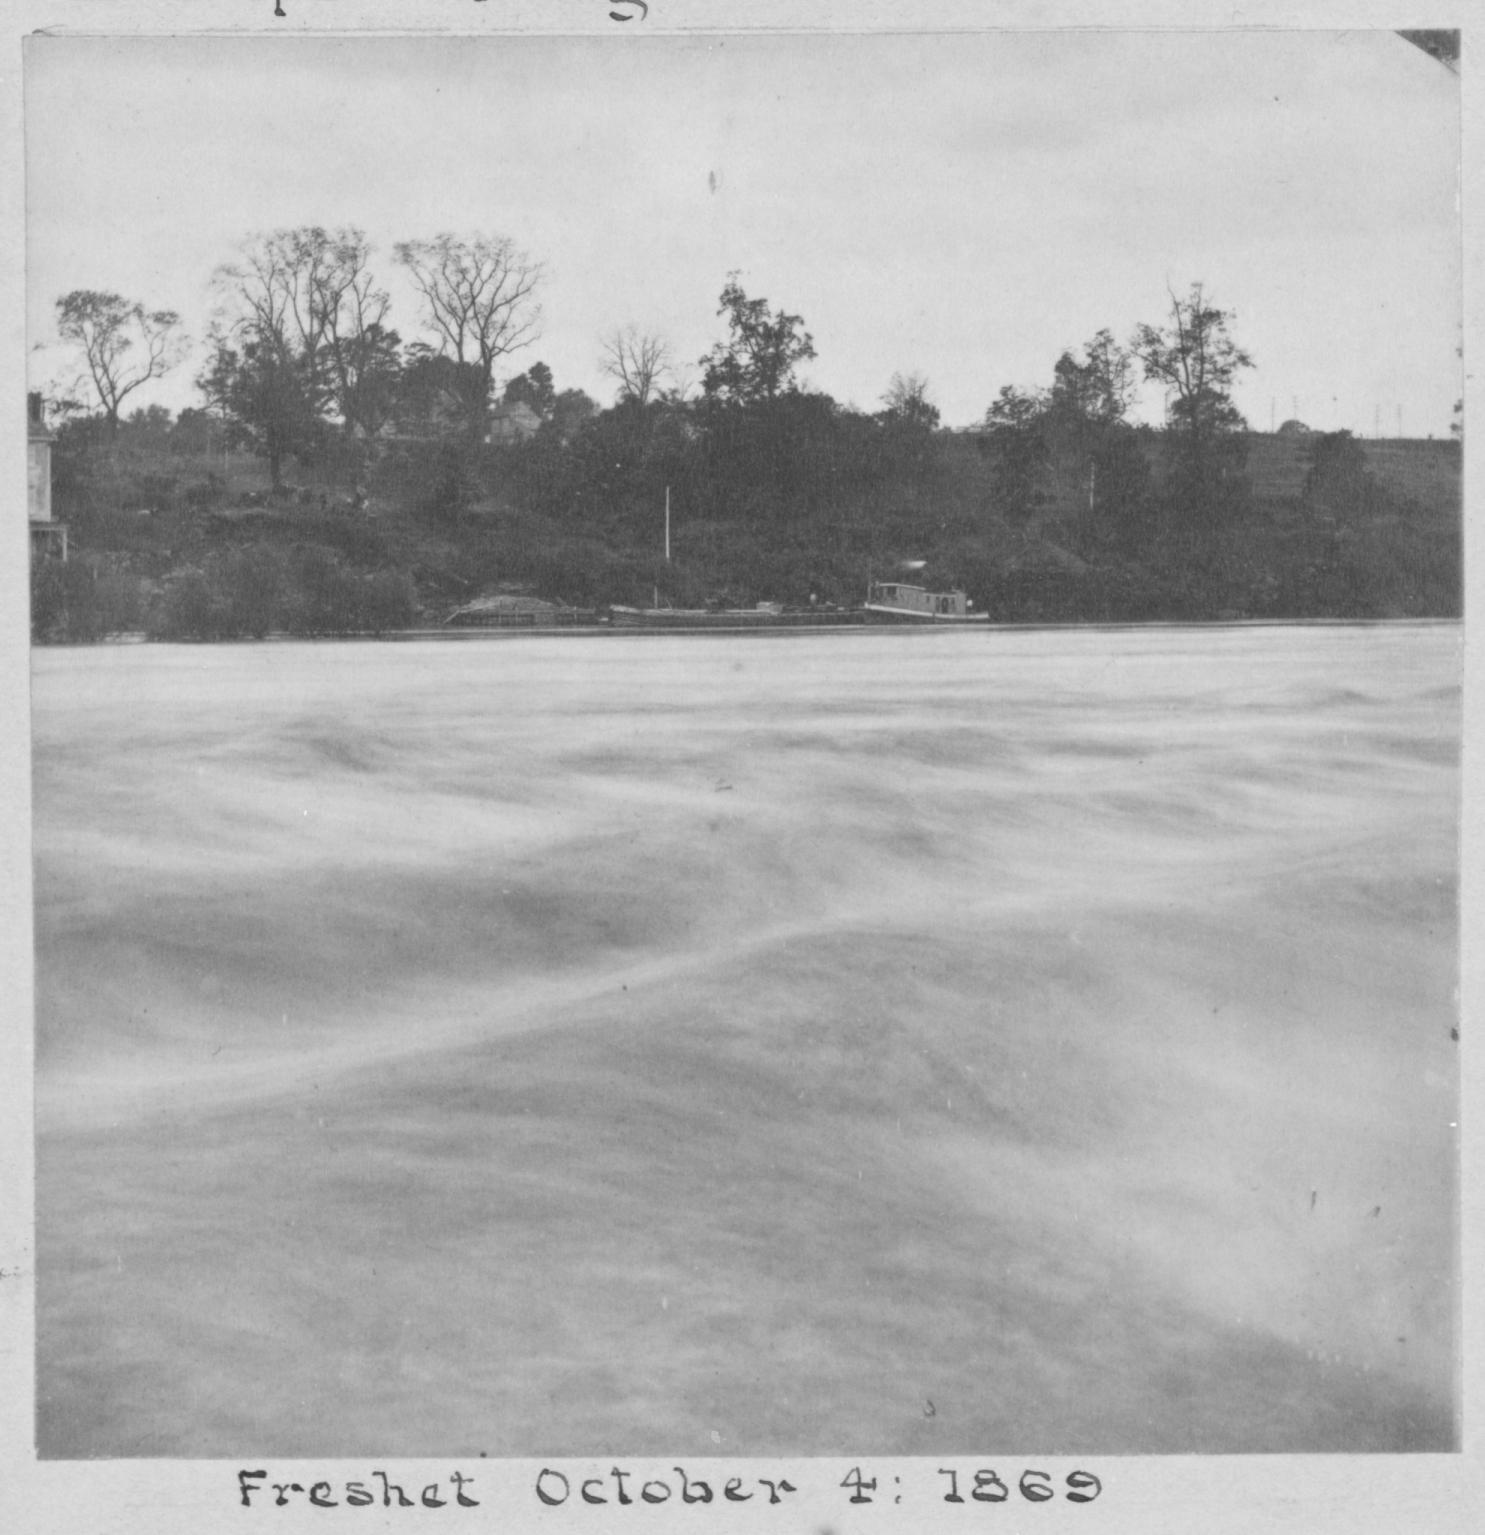 A historic photo shows waves of water rushing down the Schuylkill with boats tossed on the bank. The Fairmount Dam is invisible under the torrent.